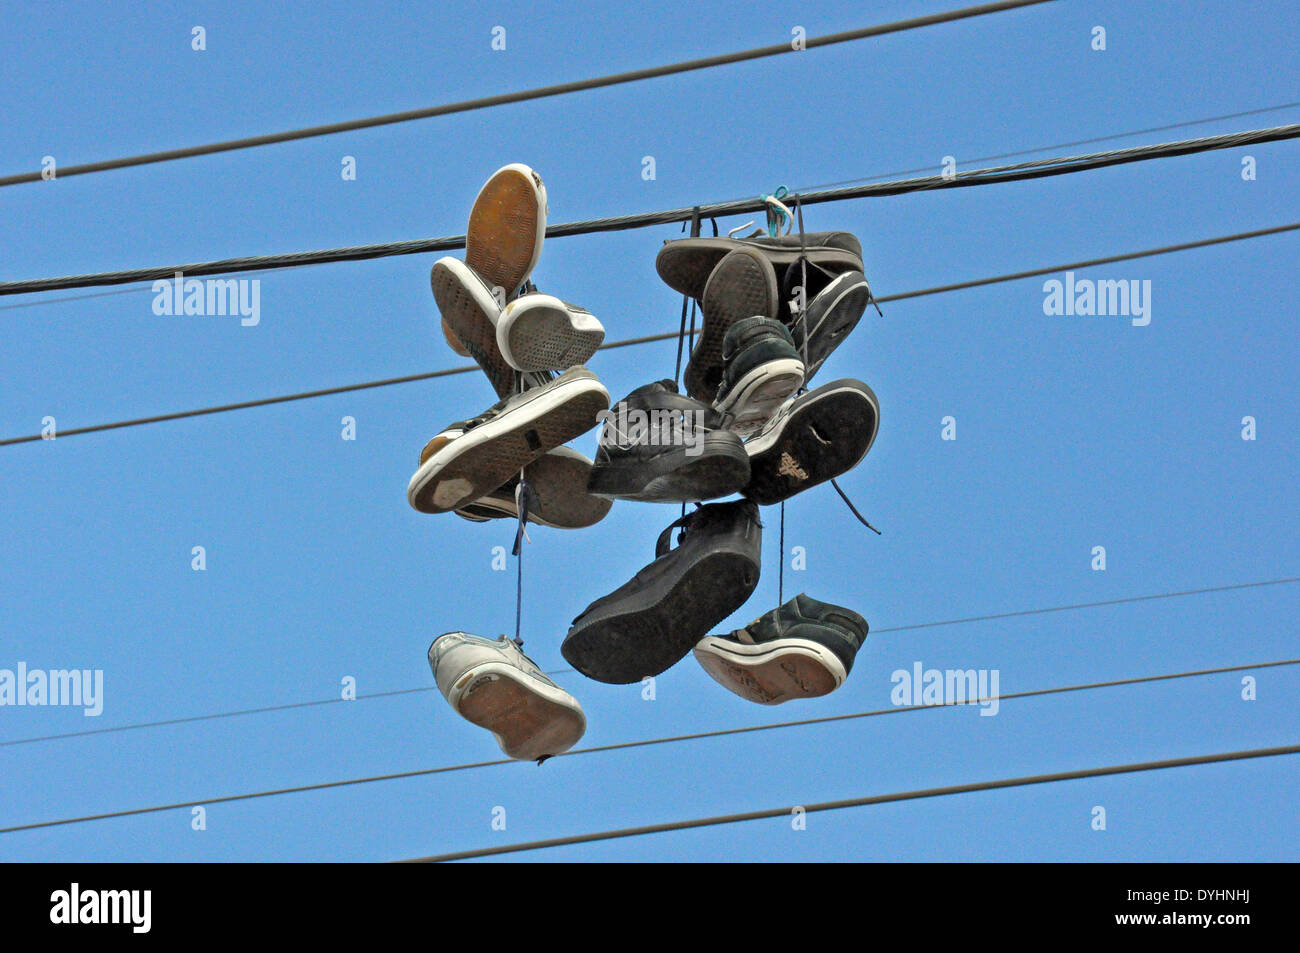 Hydro Wire Stock Photos & Hydro Wire Stock Images - Alamy